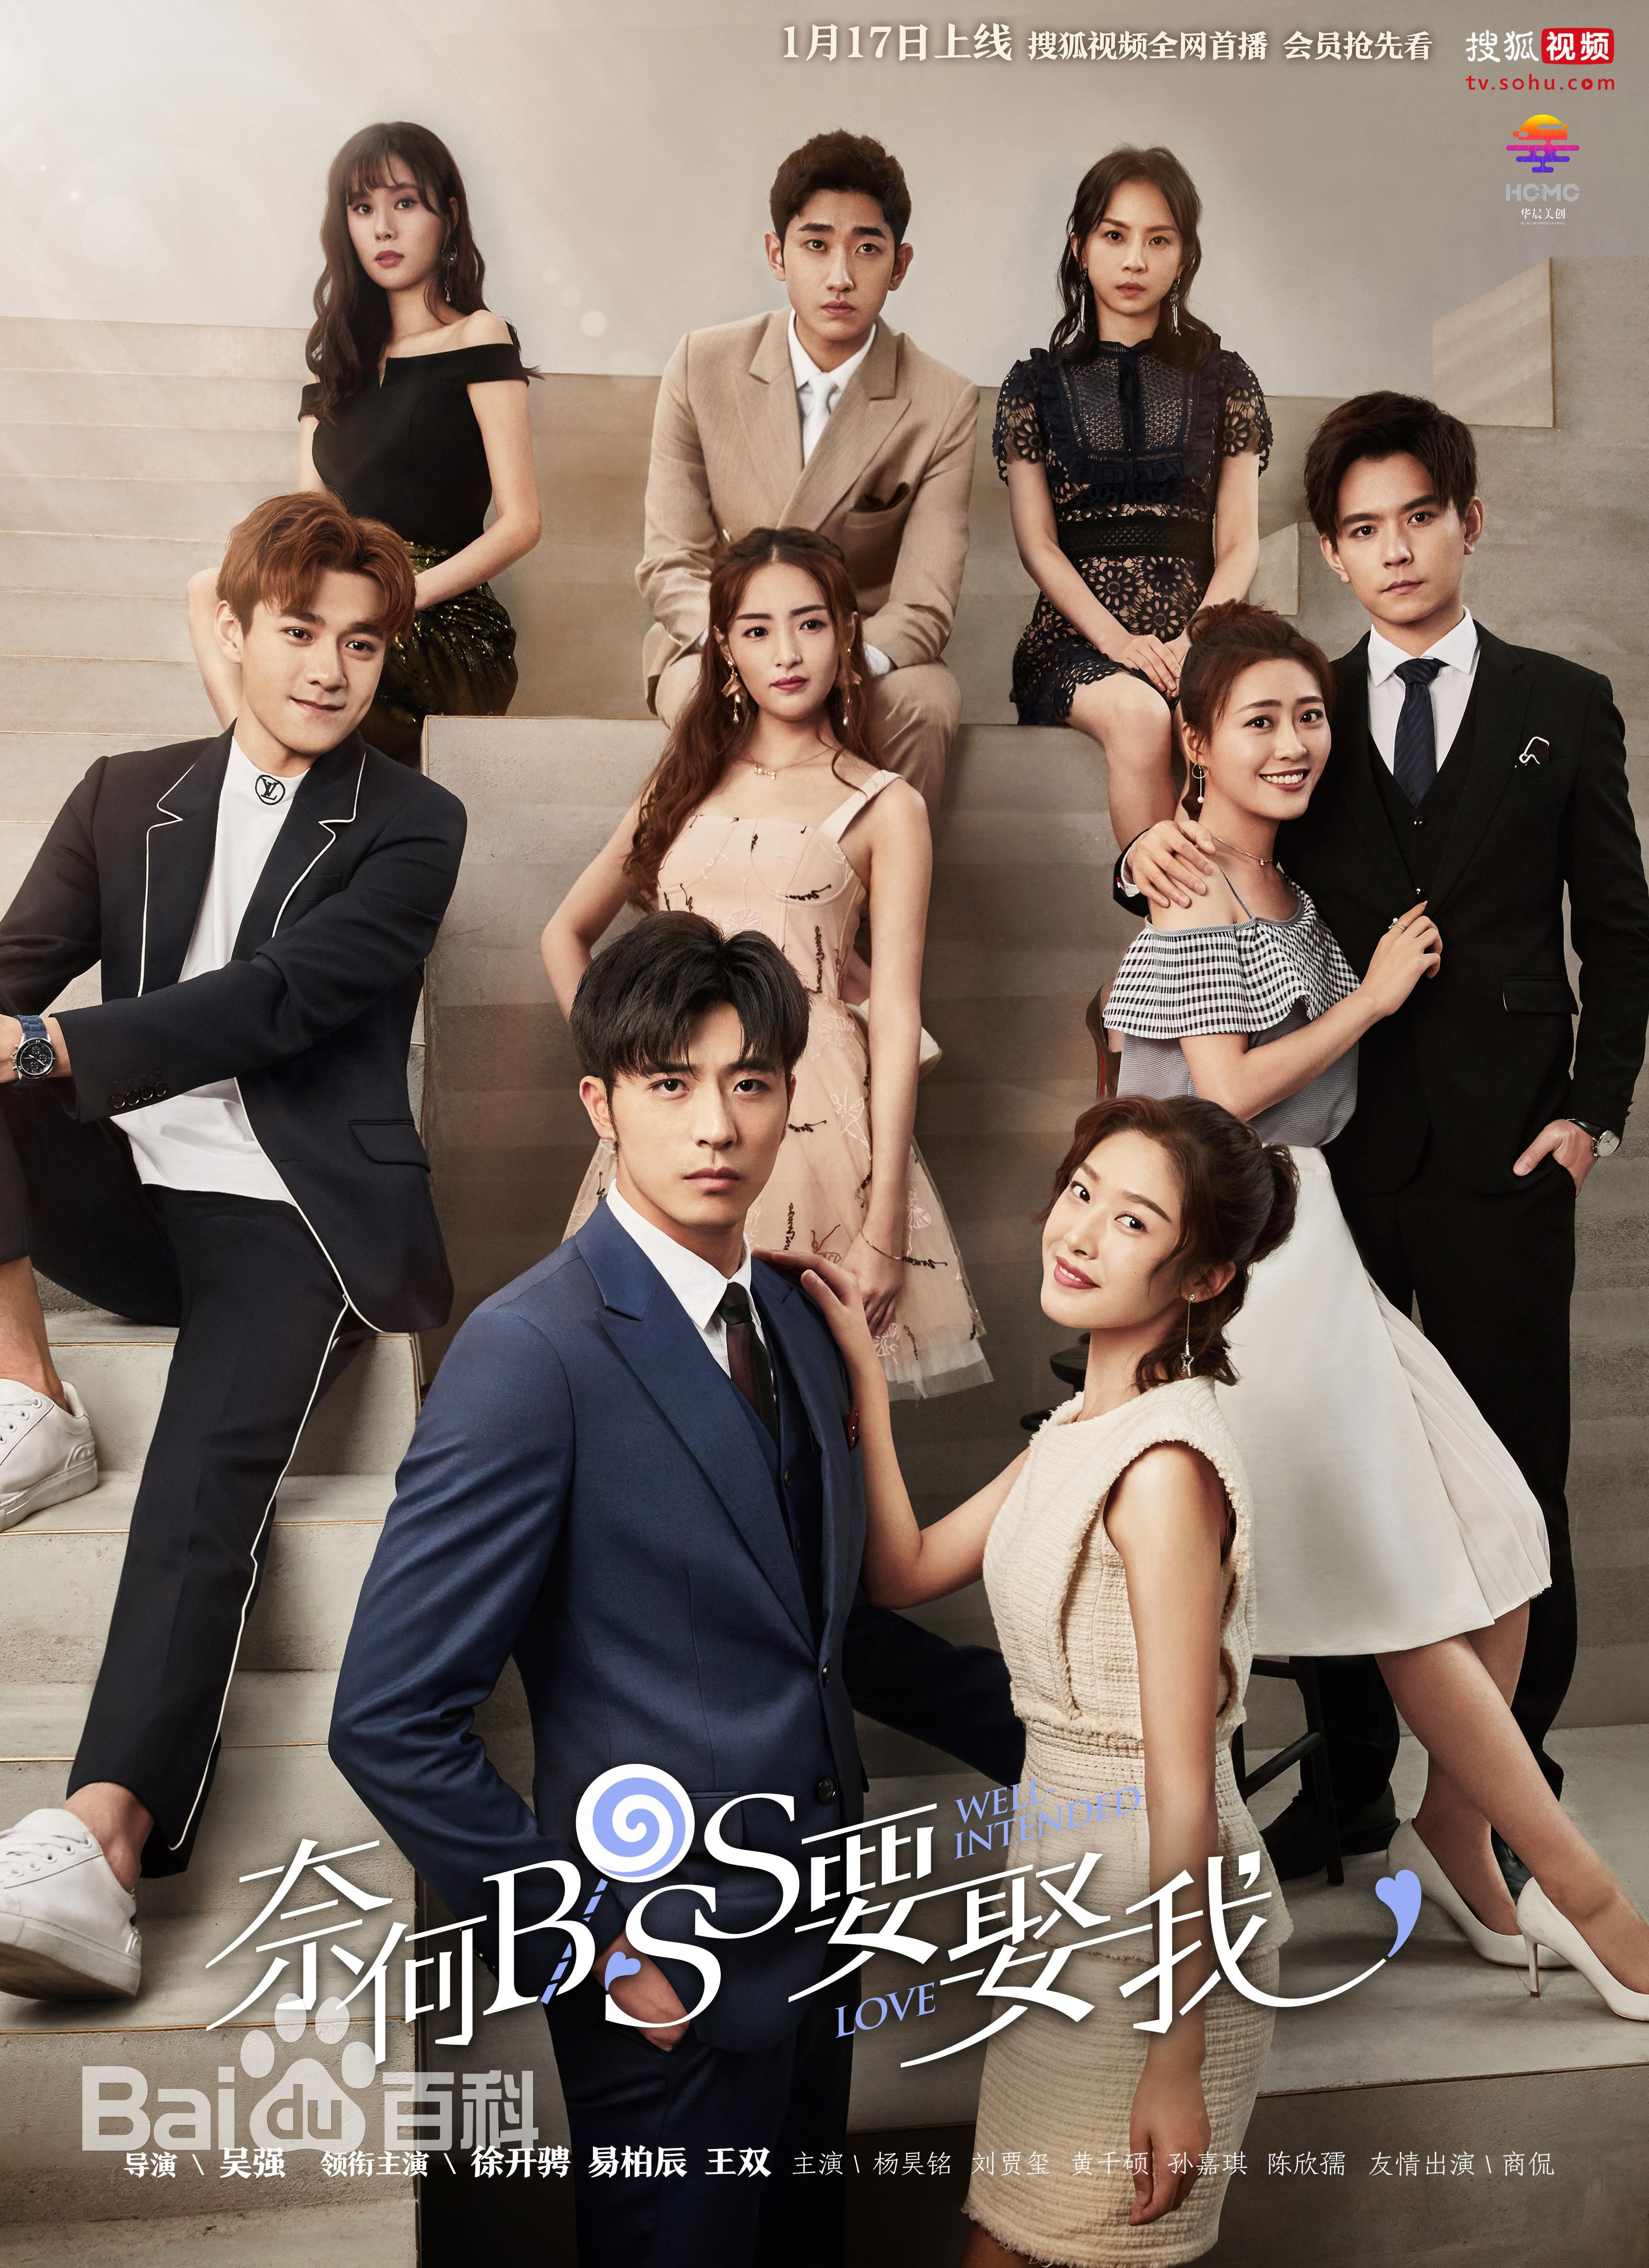 Well Intended Love Wiki Drama Fandom Includes an episode list, cast and character list, character guides, gallery, and more. drama wiki fandom